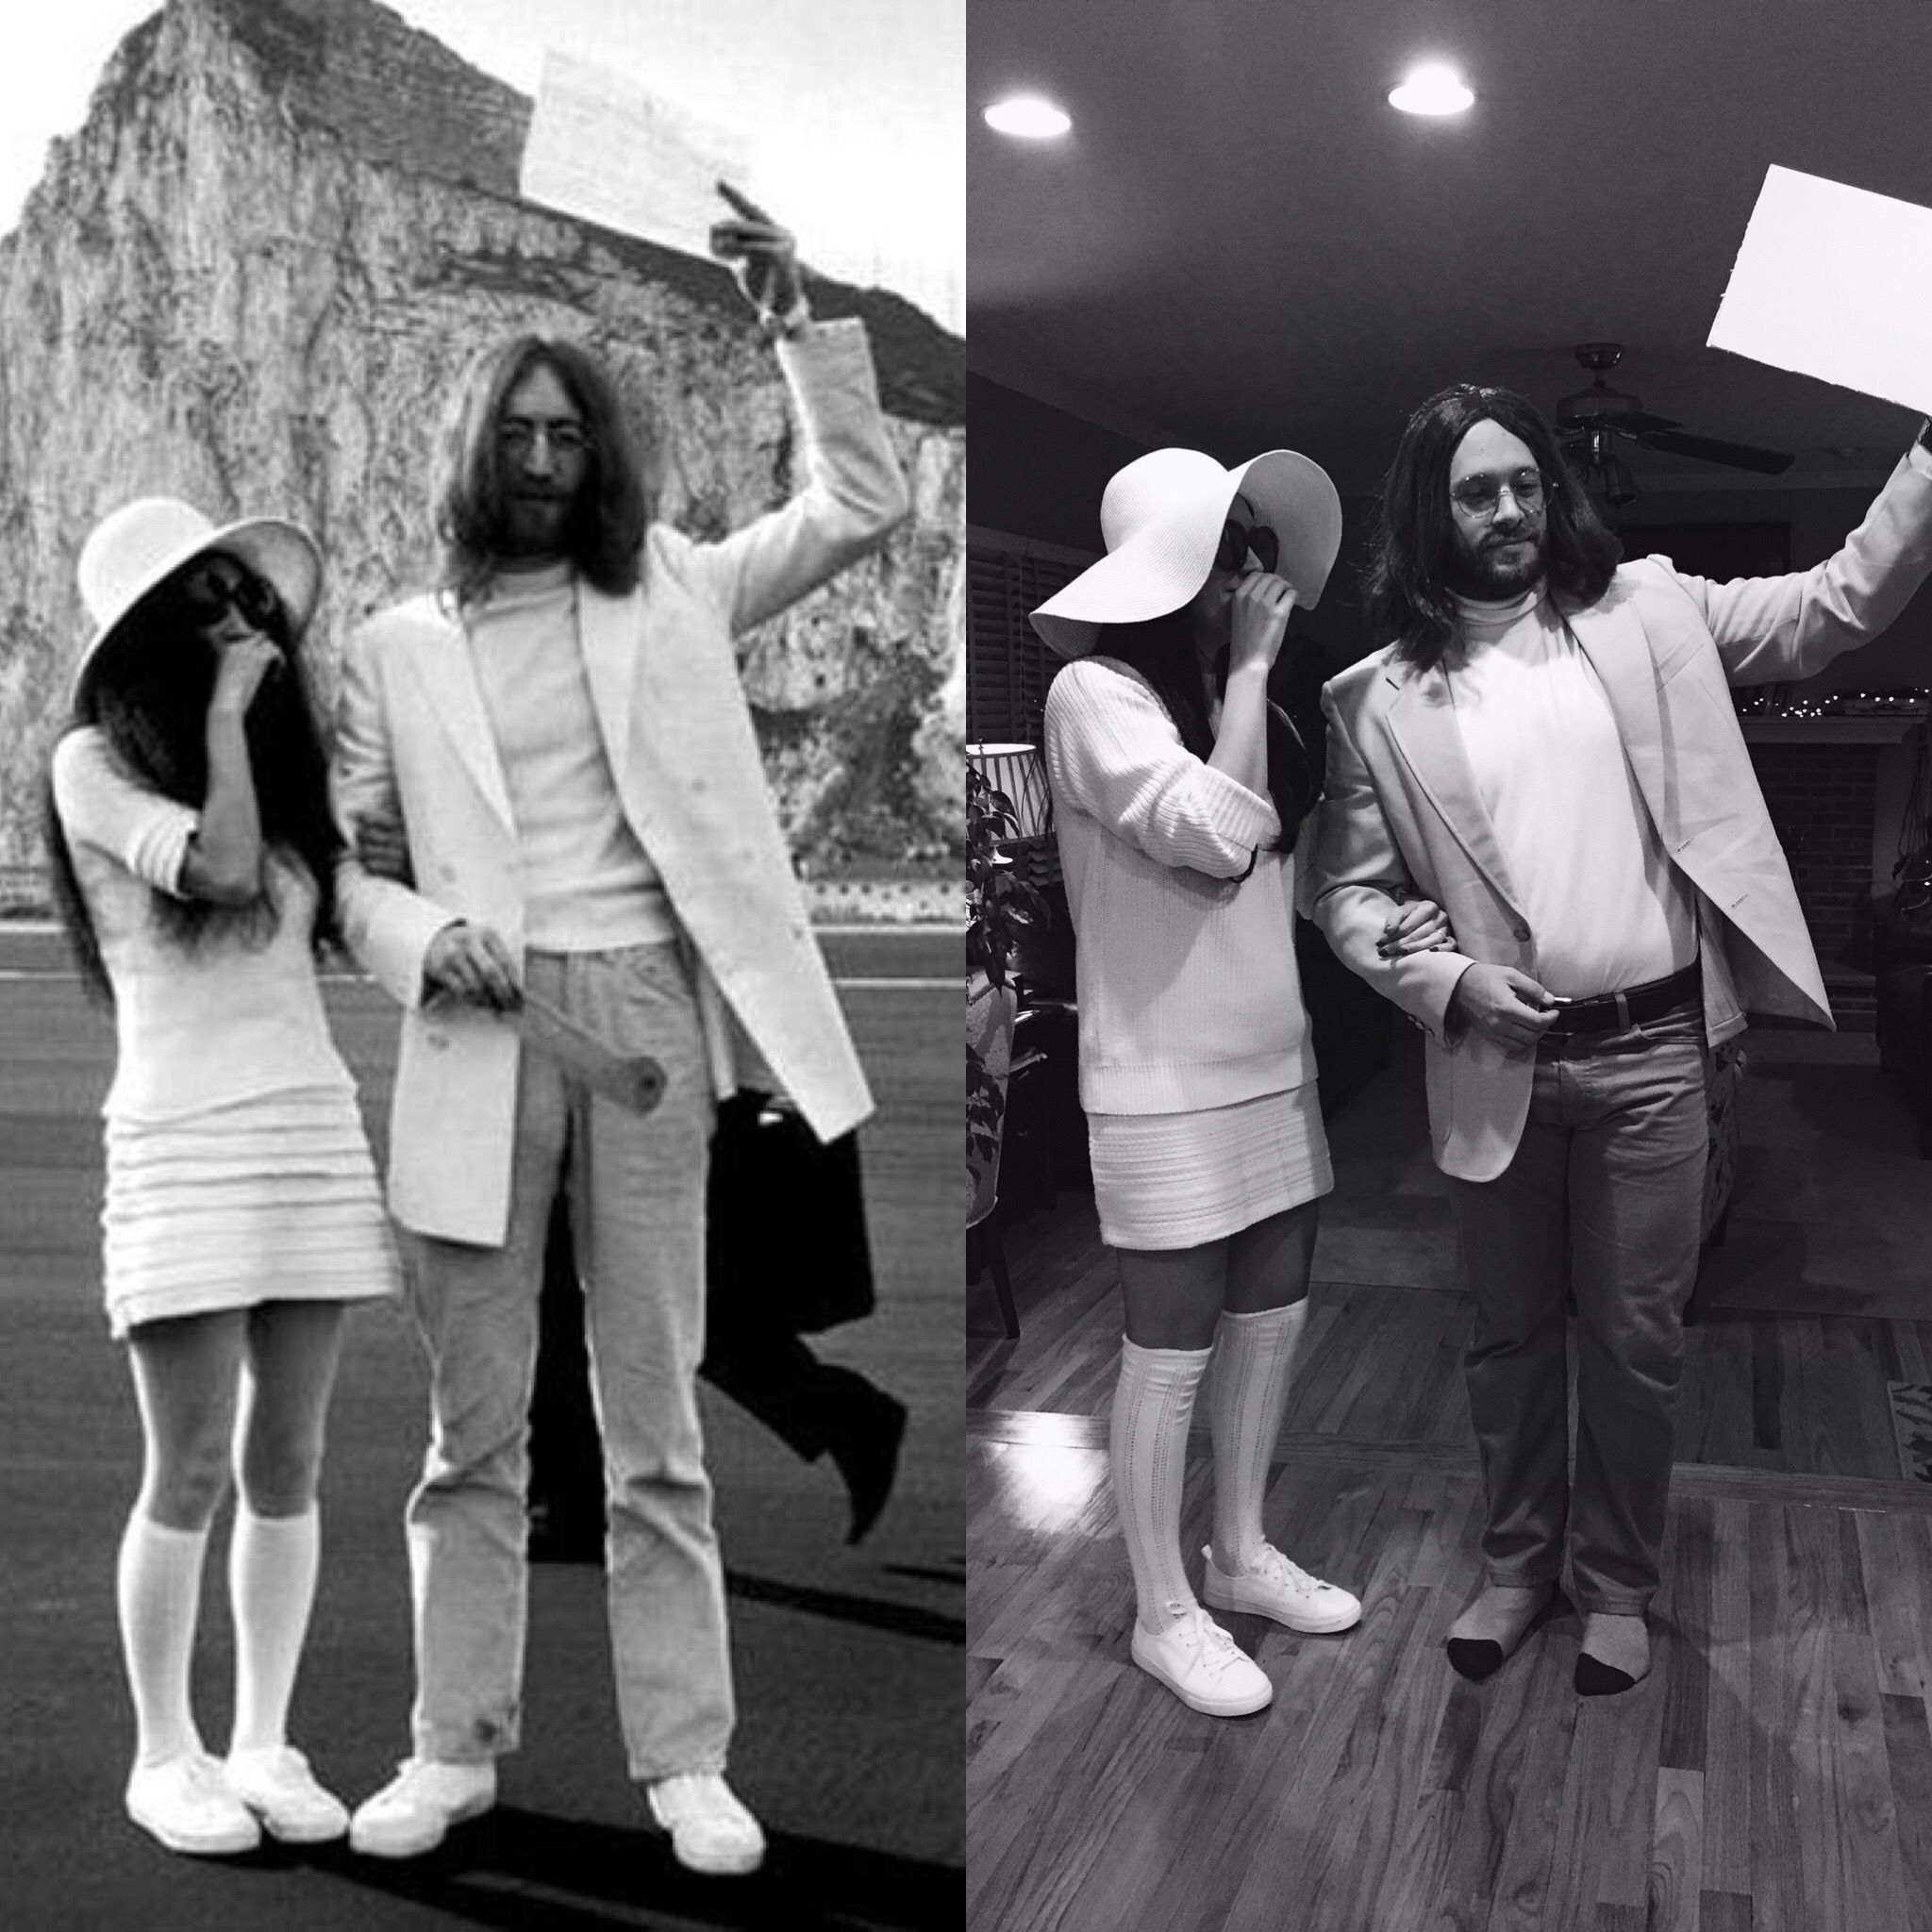 Diy John Lennon And Yoko Ono Halloween Costume John Lennon Yoko Ono Couples Costumes John Lennon And Yoko